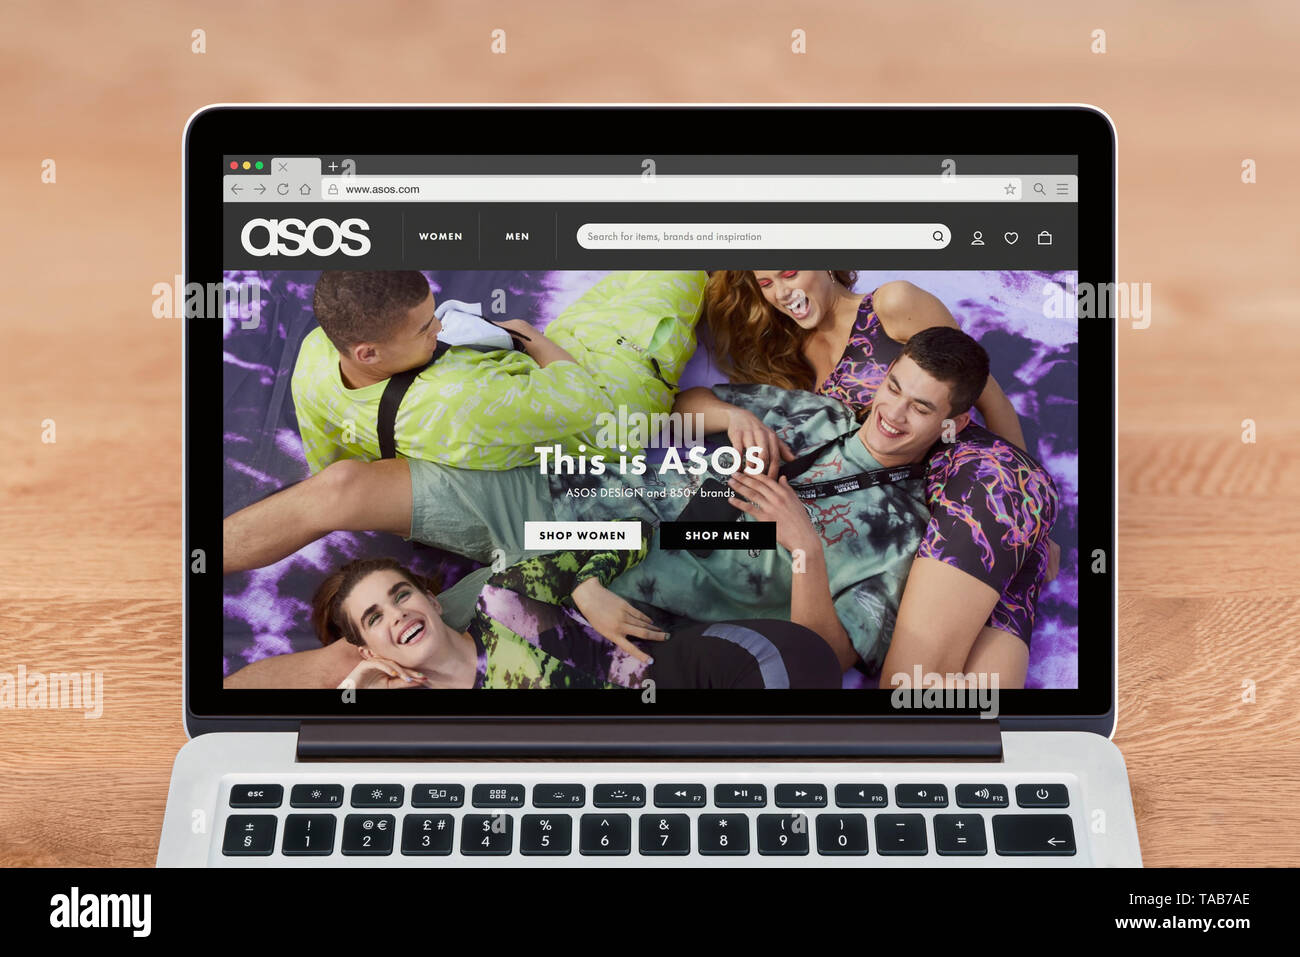 An Apple Macbook displays the Asos website (Editorial use only). - Stock Image